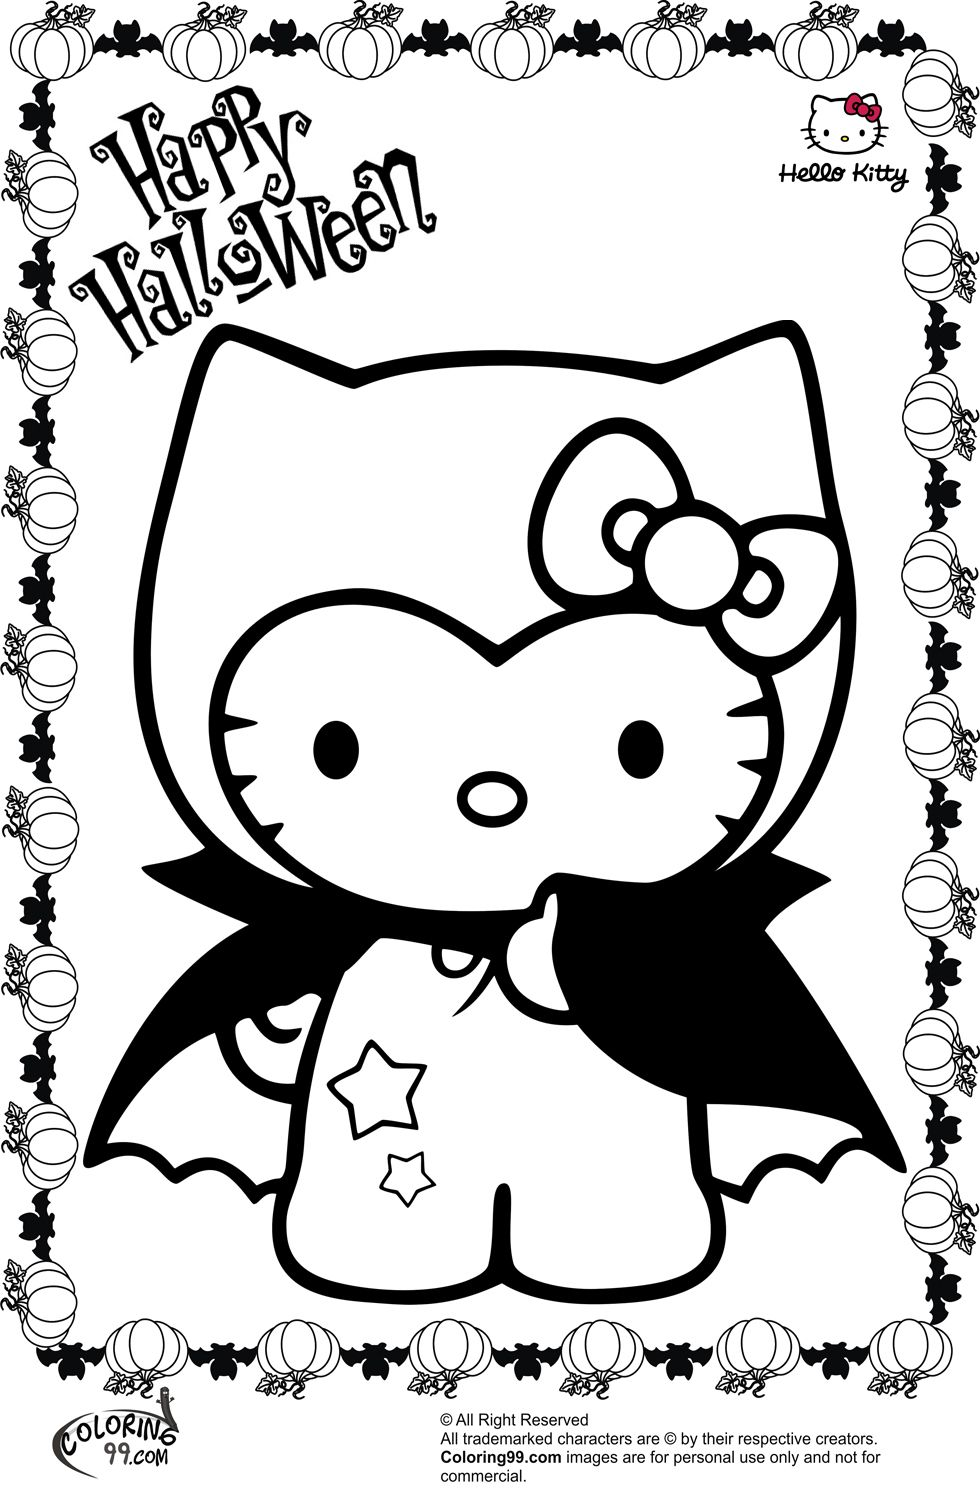 hello kitty coloring pages that you can print free printable hello kitty coloring pages picture 56jpg coloring you hello kitty pages that can print